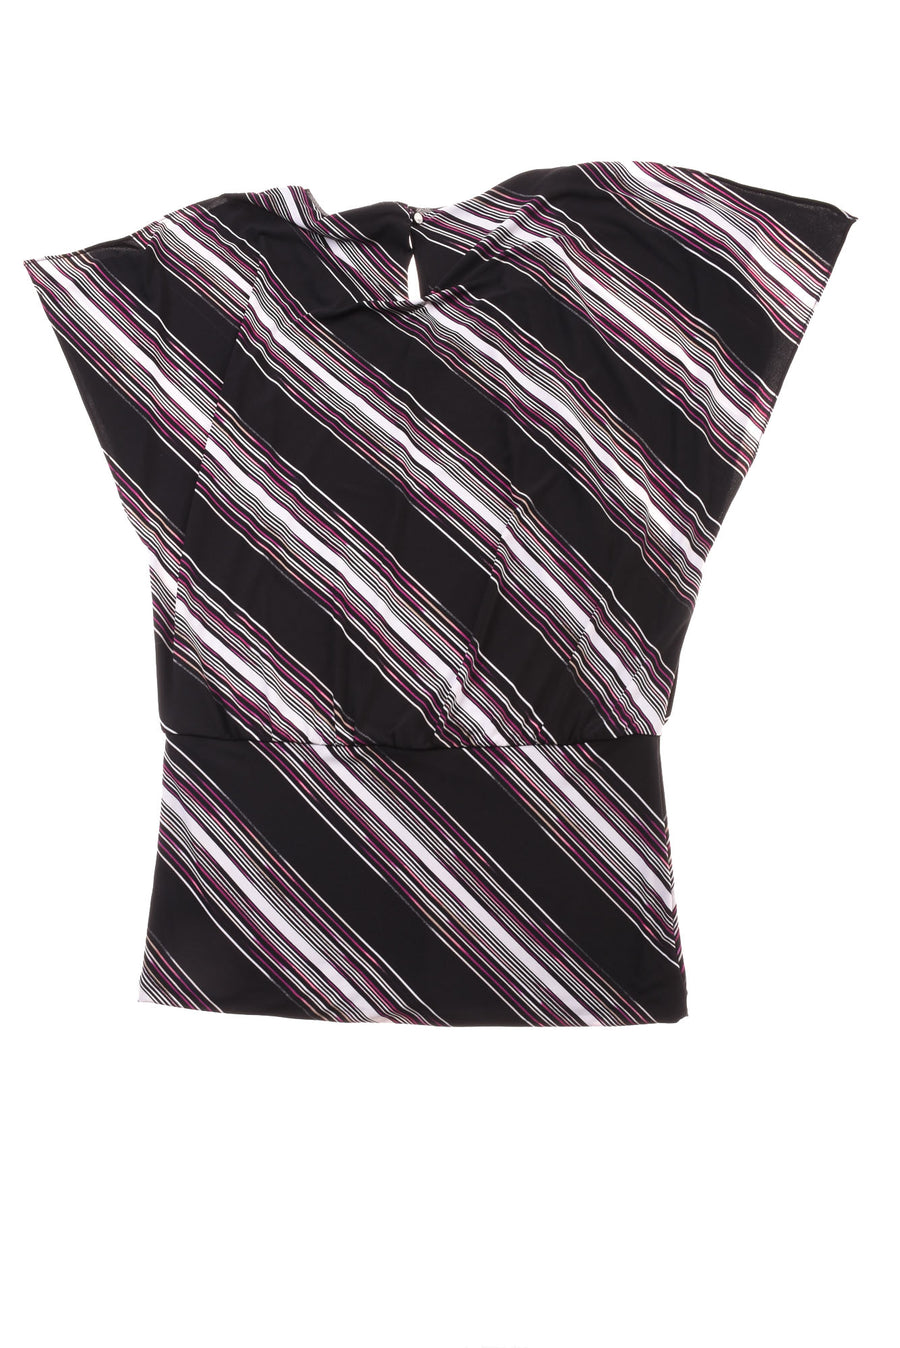 Women's Top By White House Black Market